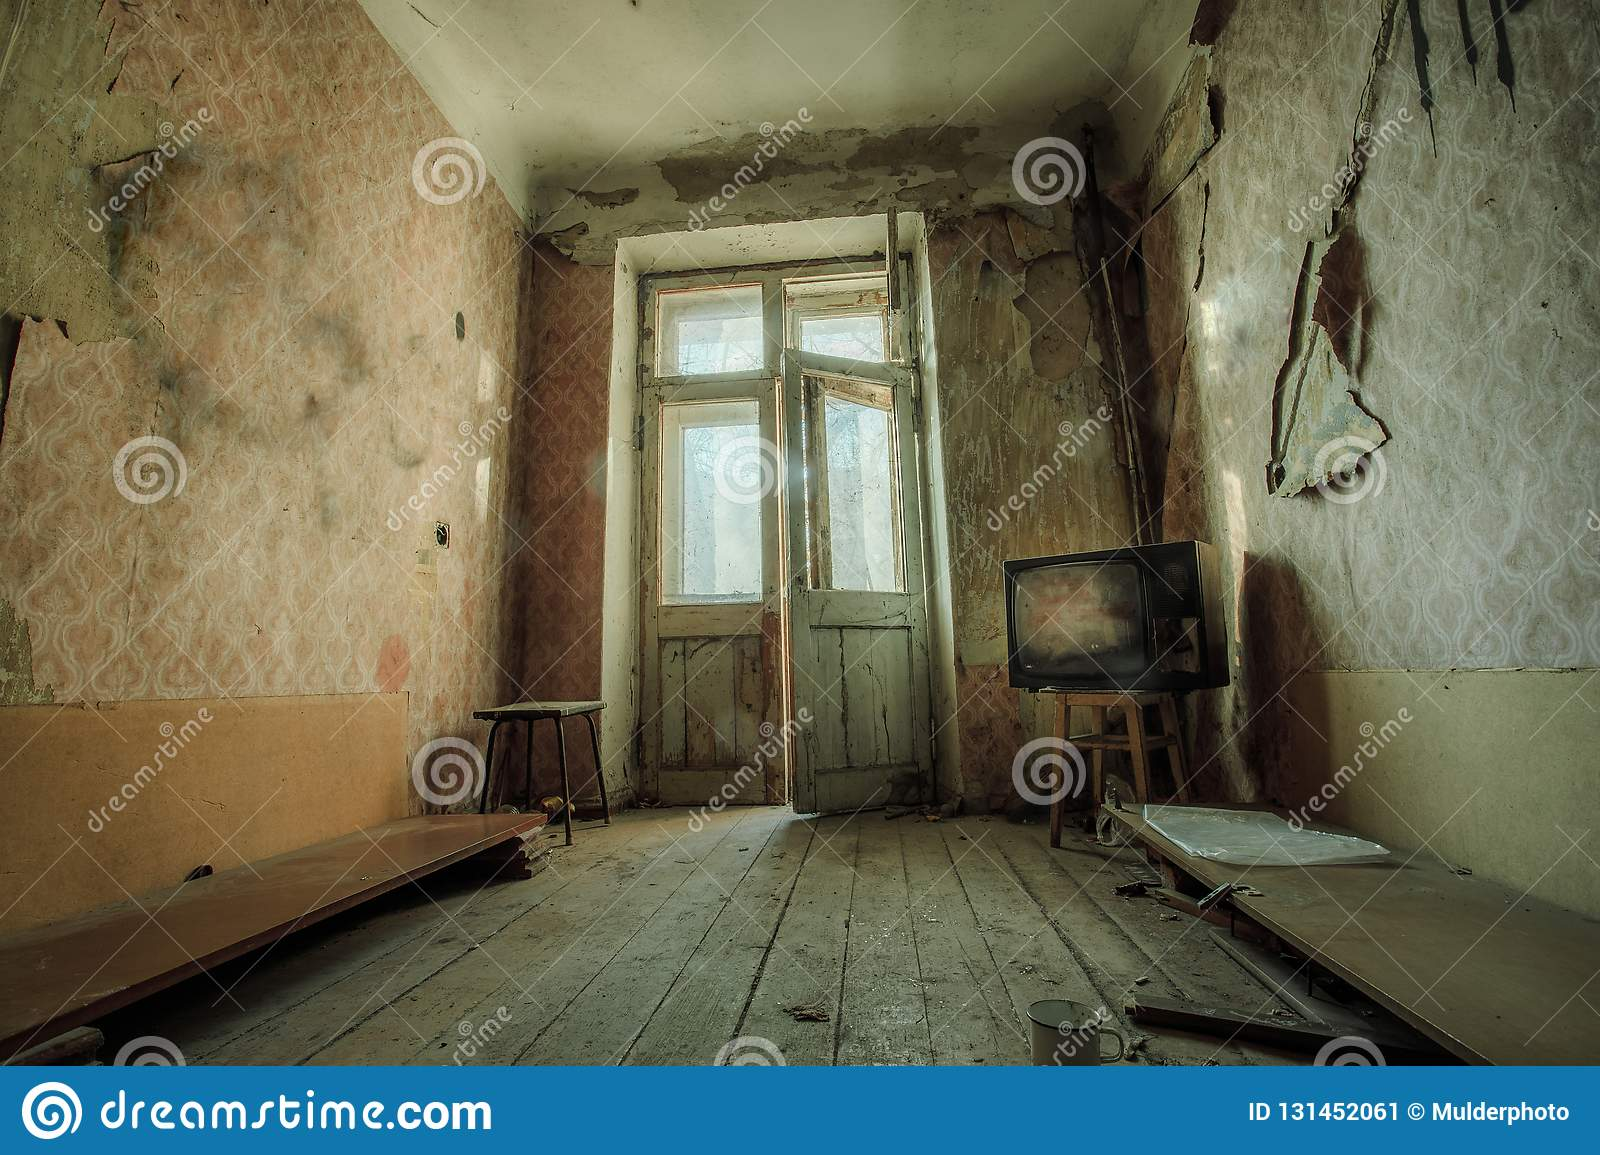 Groovy Dark Creepy Messy Room With Broken Tv Set In Abandoned House Download Free Architecture Designs Scobabritishbridgeorg